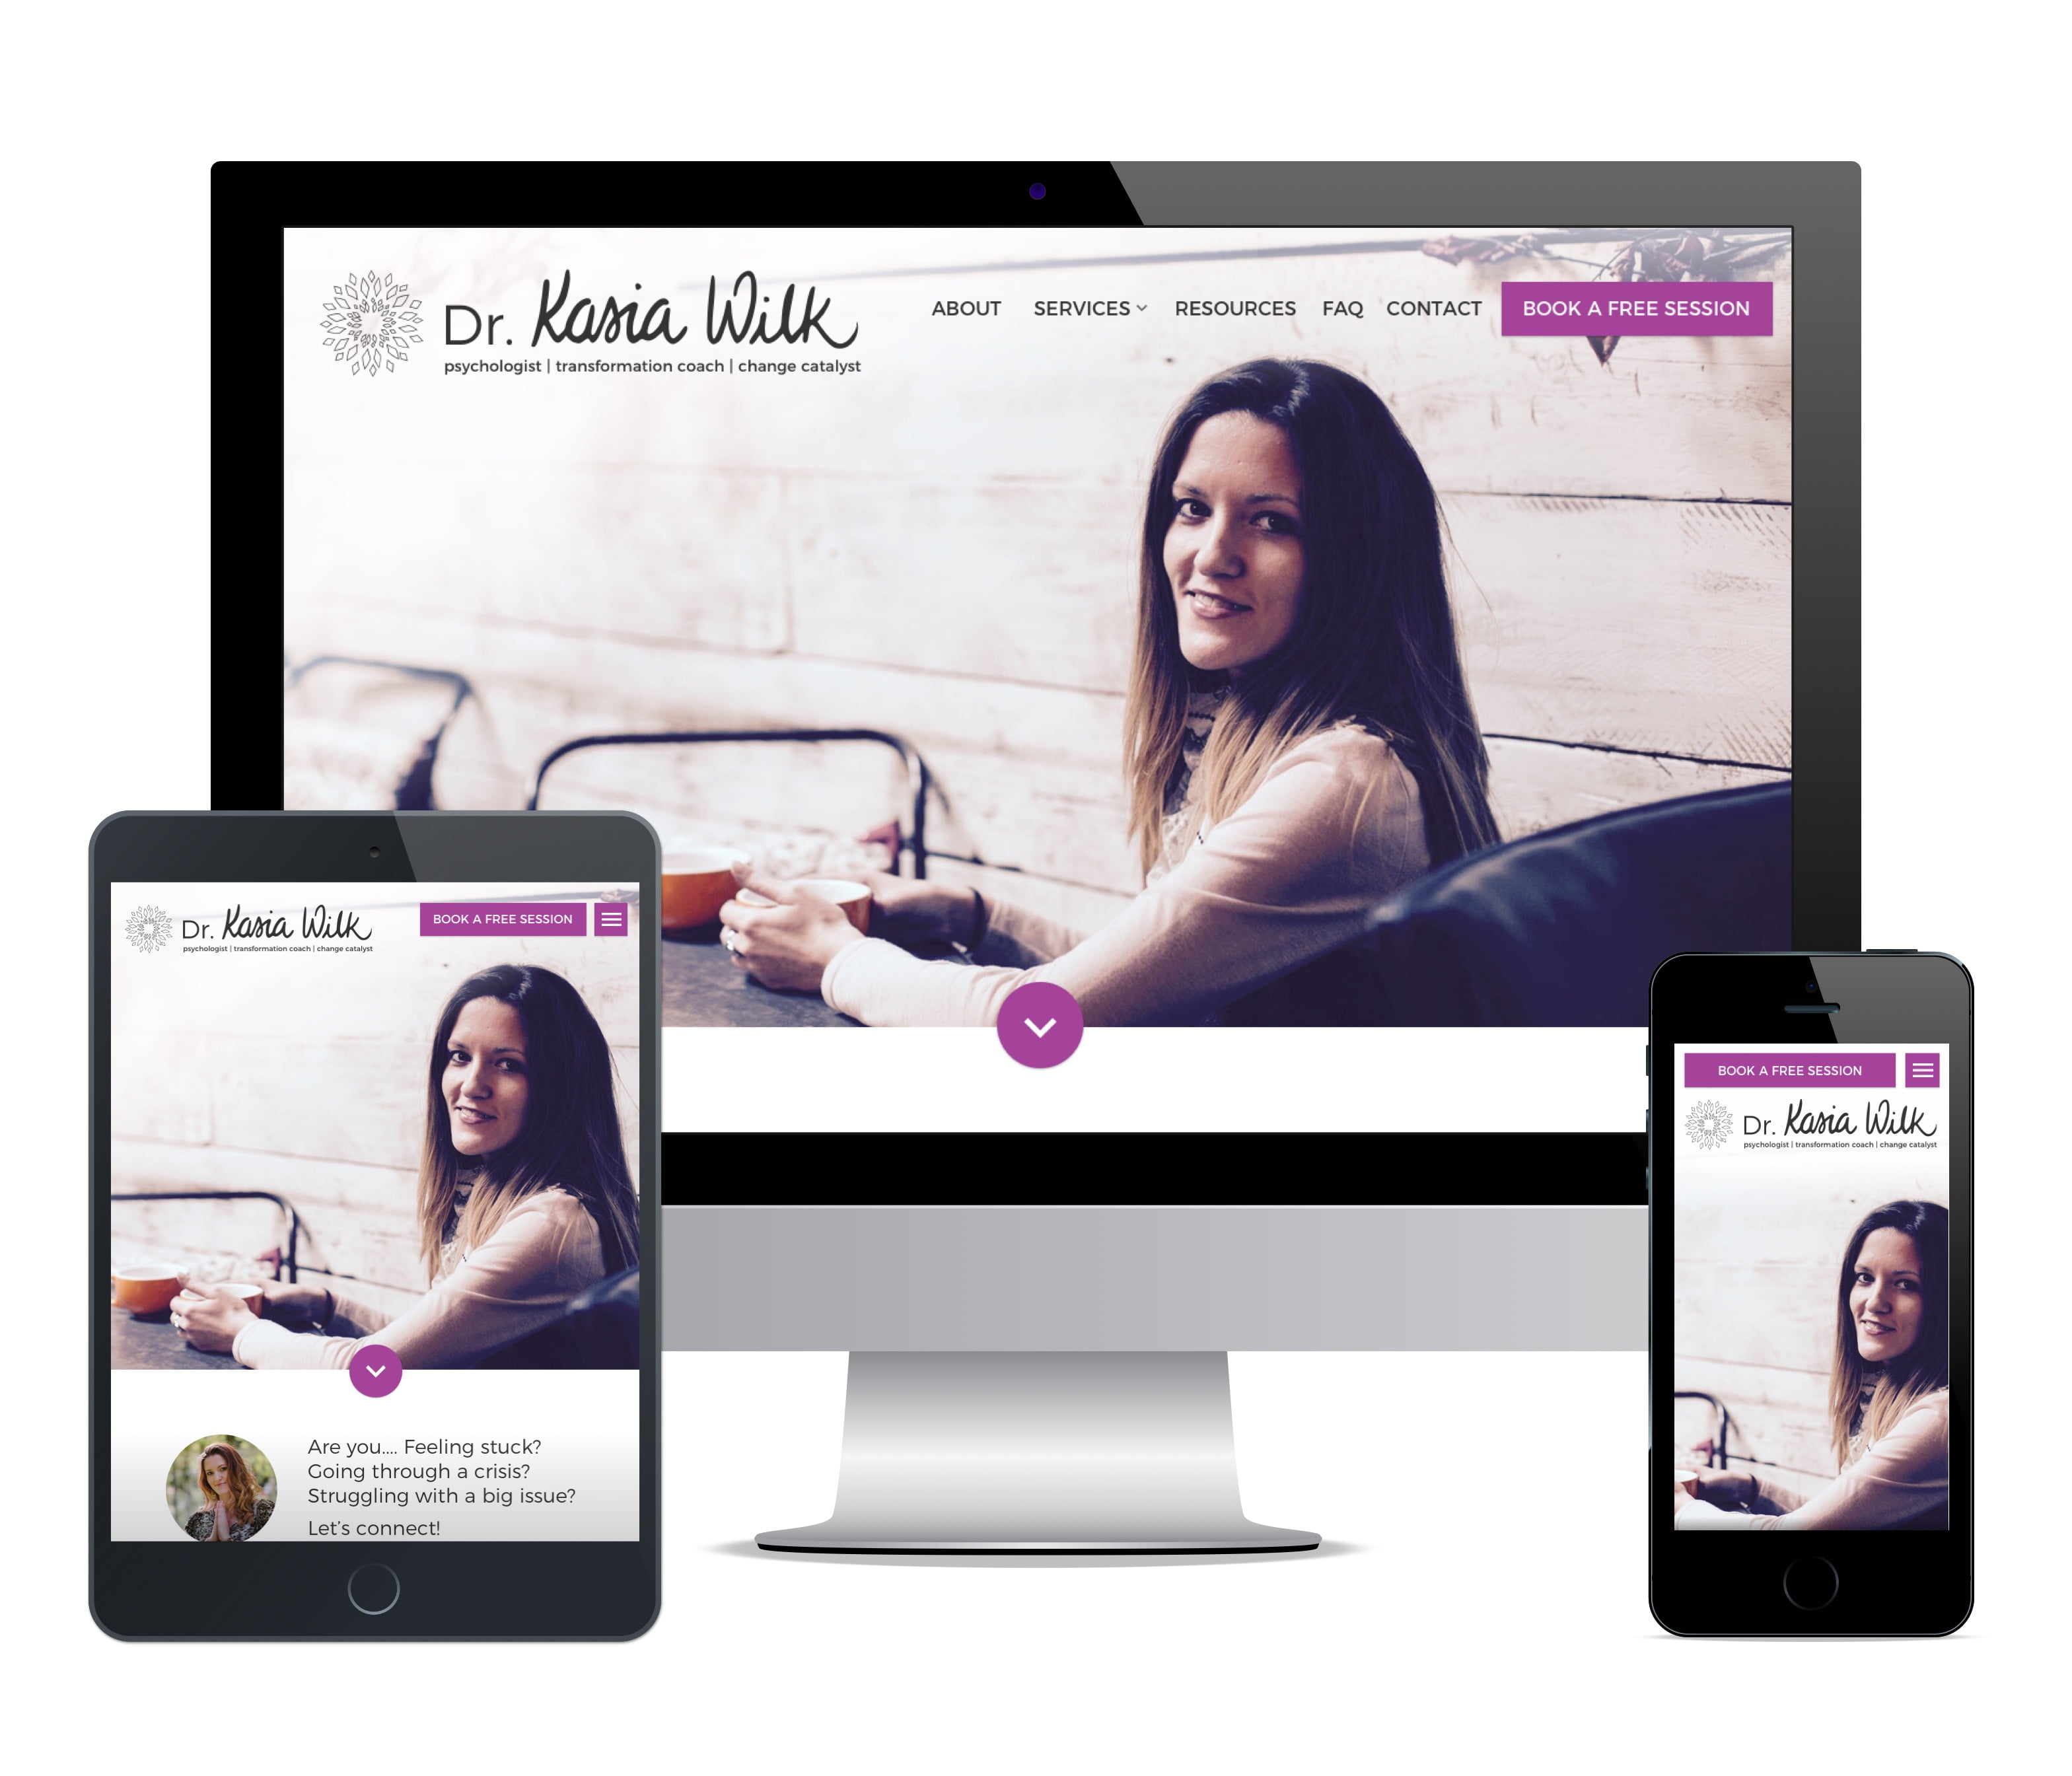 counsellor-kasia-wilk-web-design